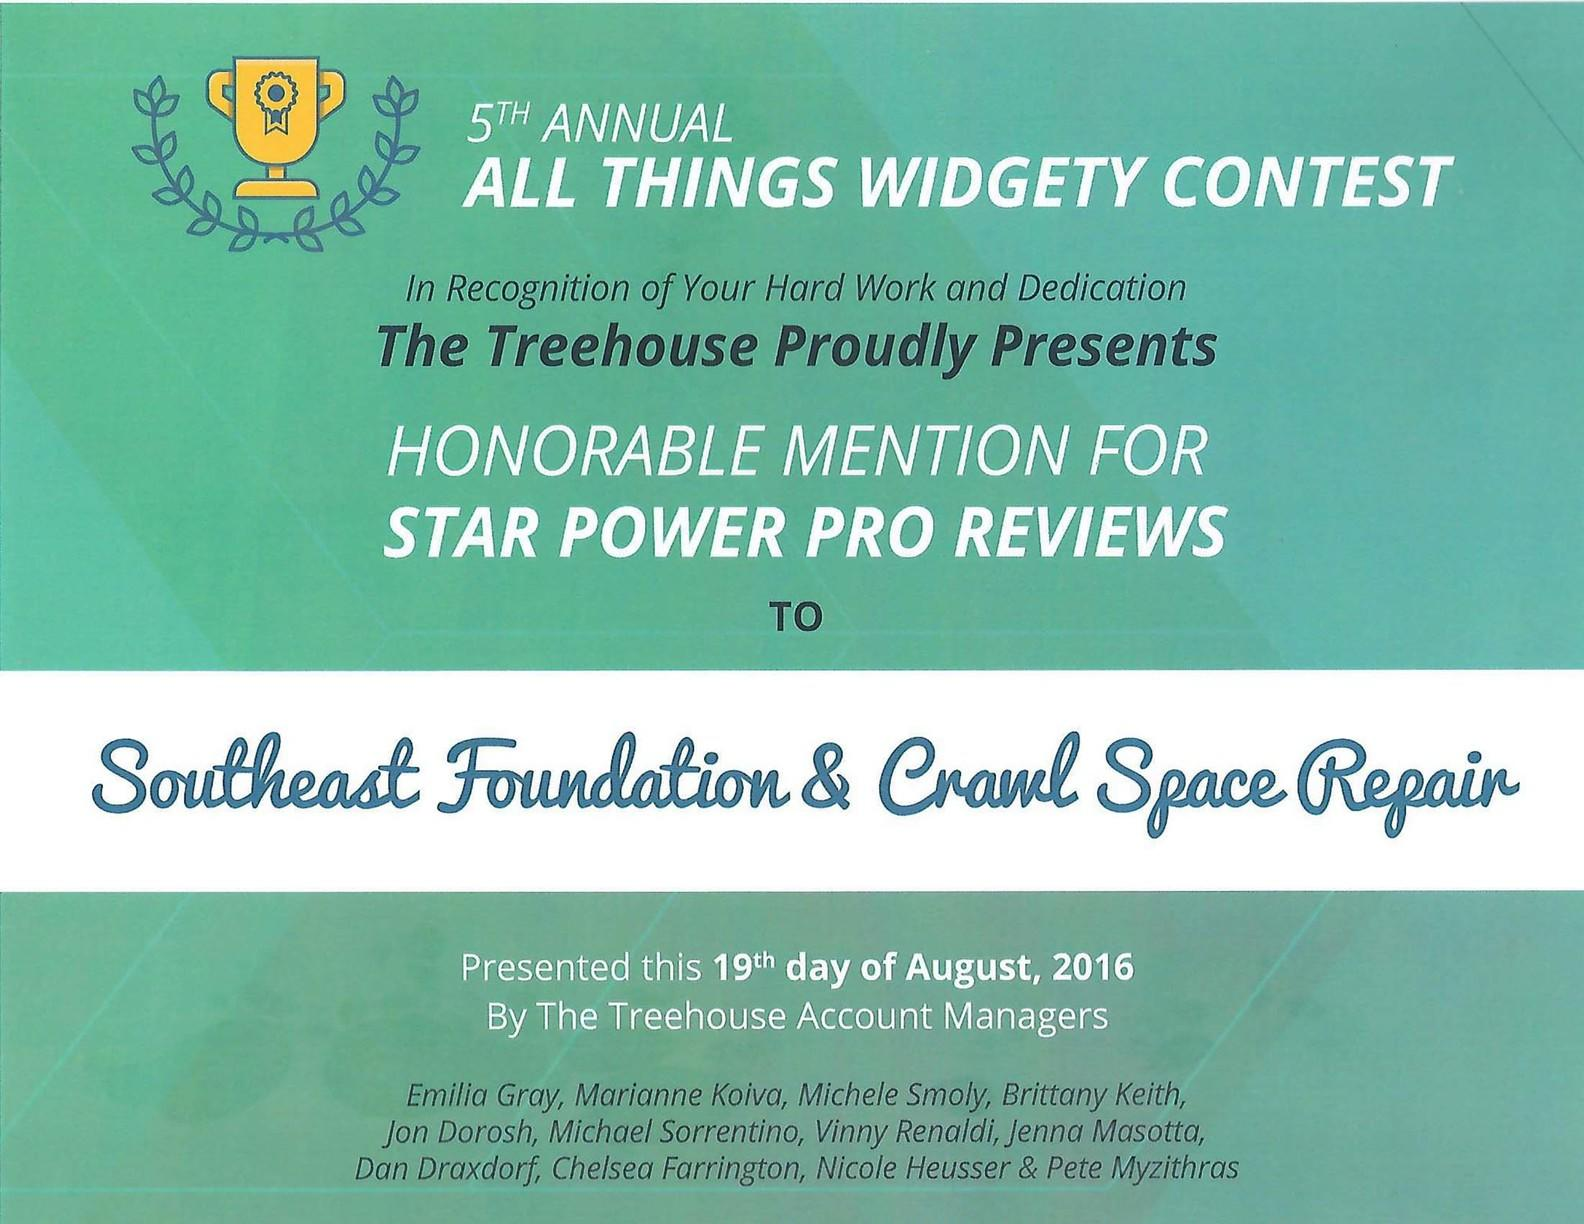 2016 Honorable Mention for All Things Widgety Contest